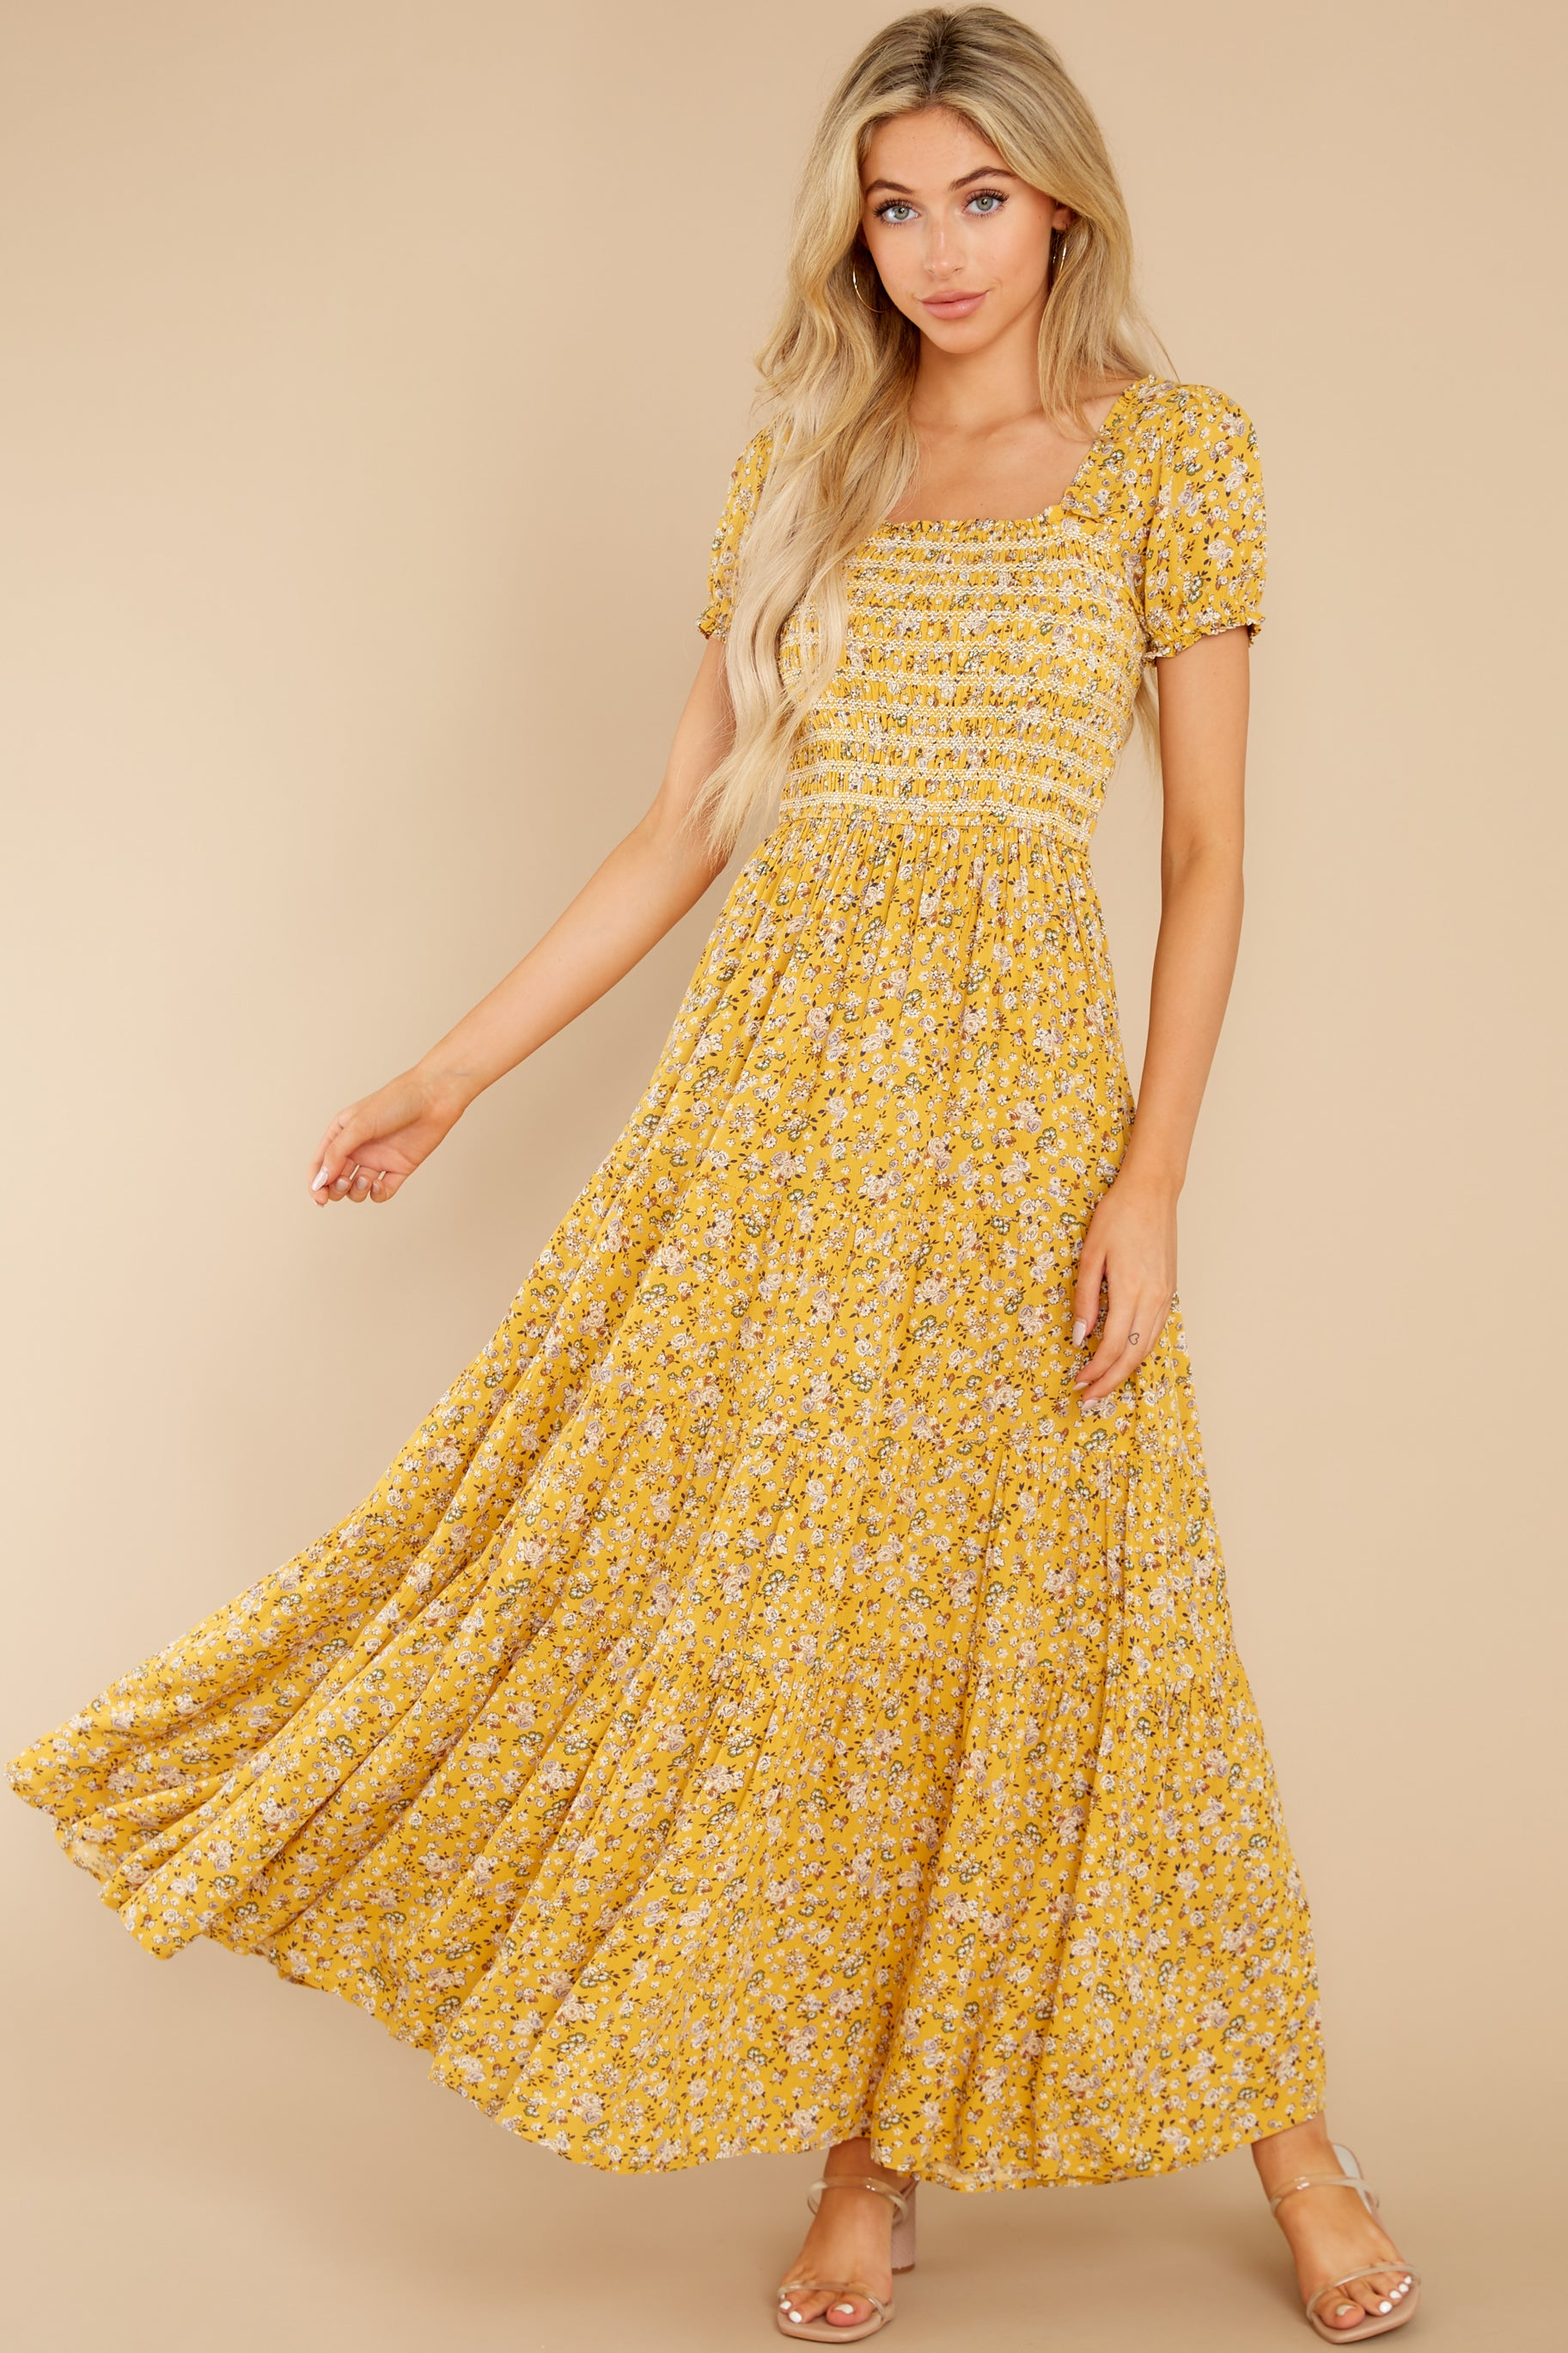 70s Dresses – Disco Dress, Hippie Dress, Wrap Dress Tagalongs Yellow Floral Print Maxi Dress $64.00 AT vintagedancer.com